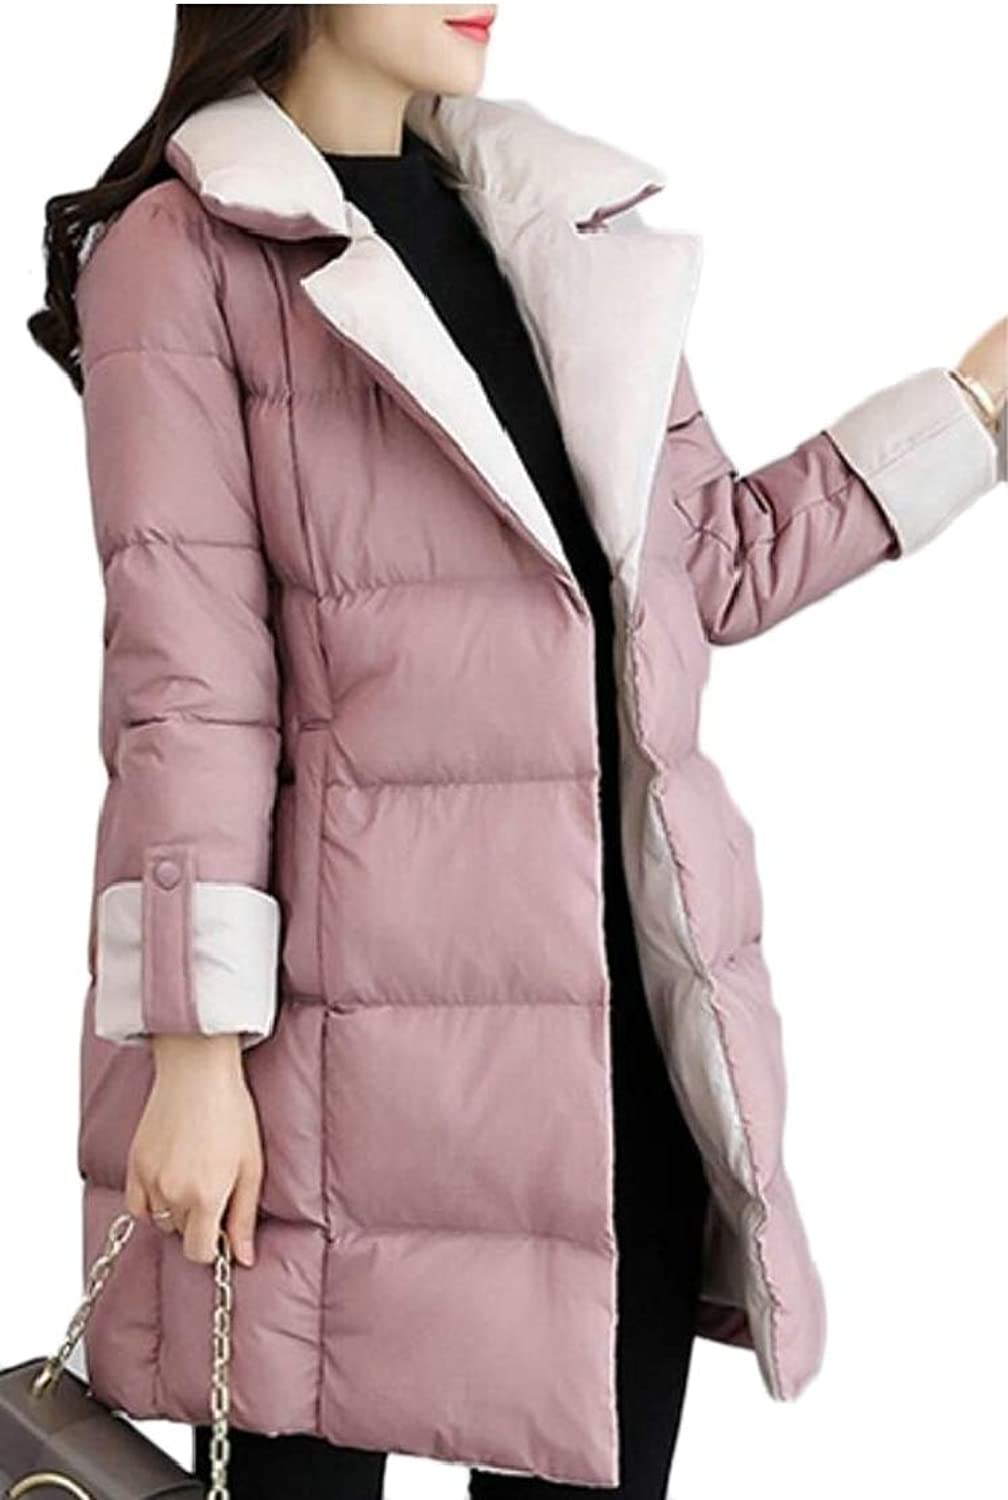 XQS Women's Warm Parka Jacket Outdoor Coat Anorak Down Parka Coat